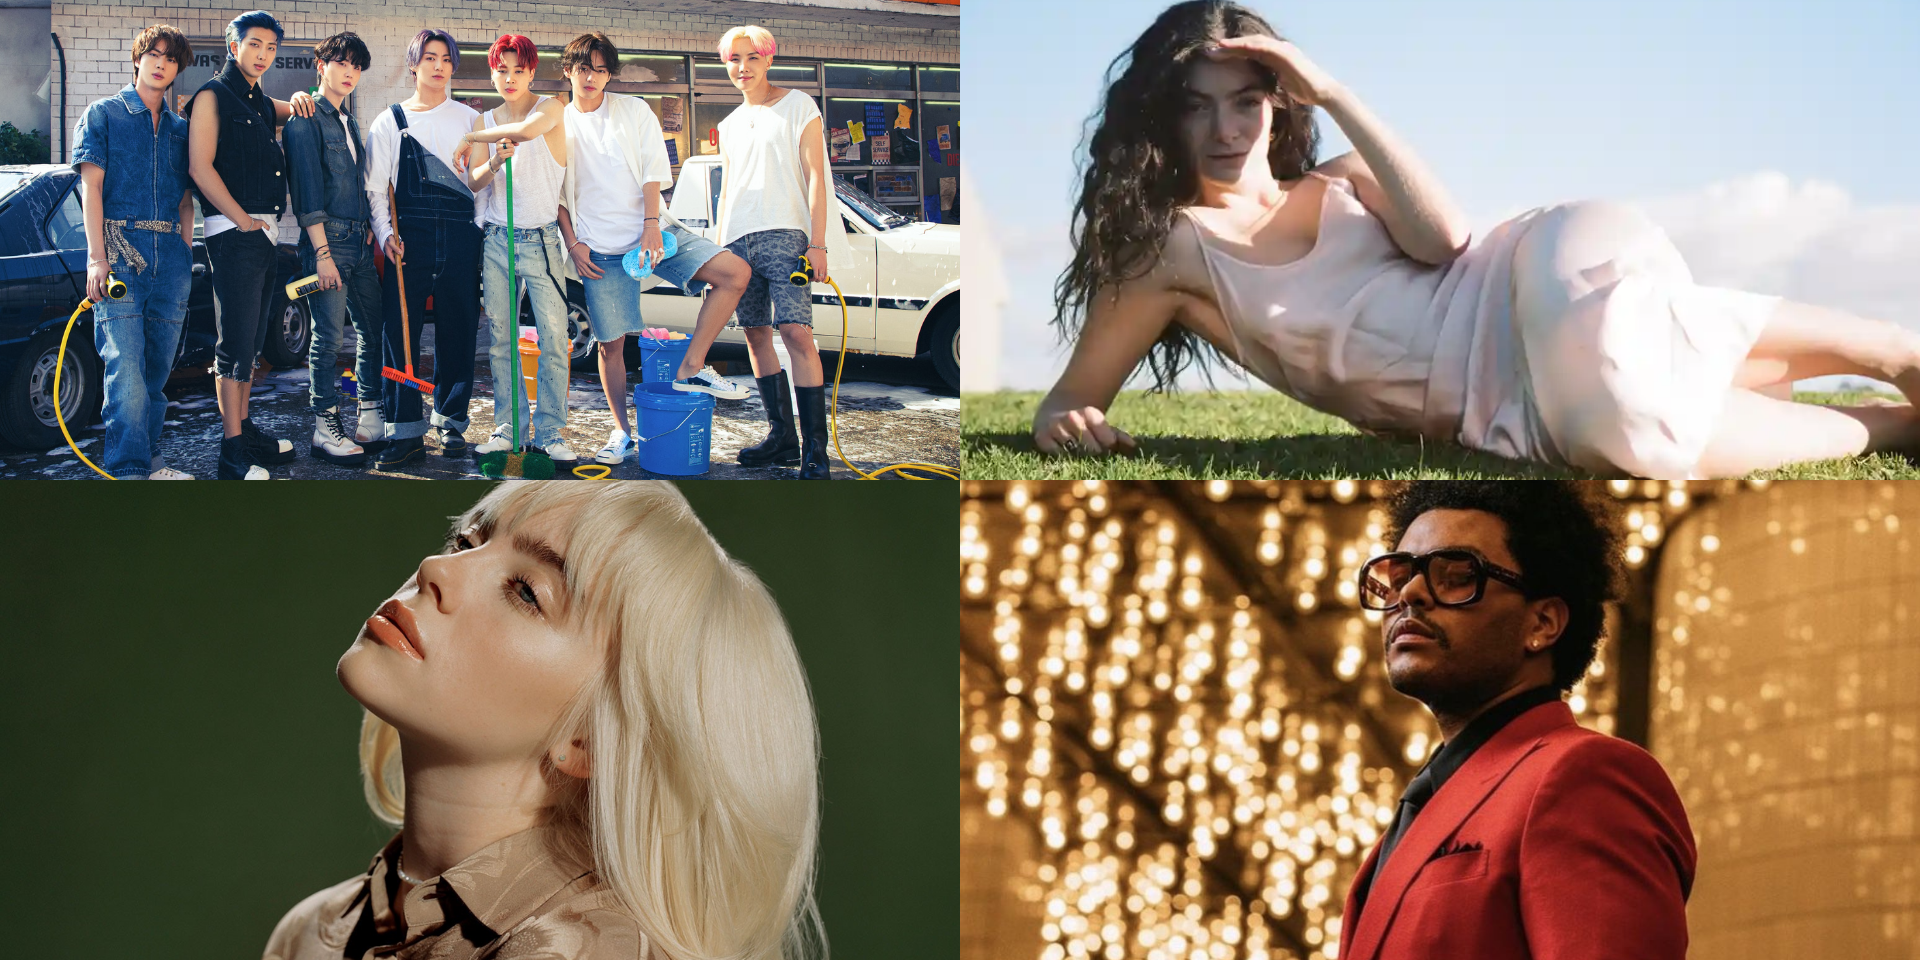 BTS, Lorde, Billie Eilish, The Weeknd, and more to perform at Global Citizen Live 2021, here's how to tune in